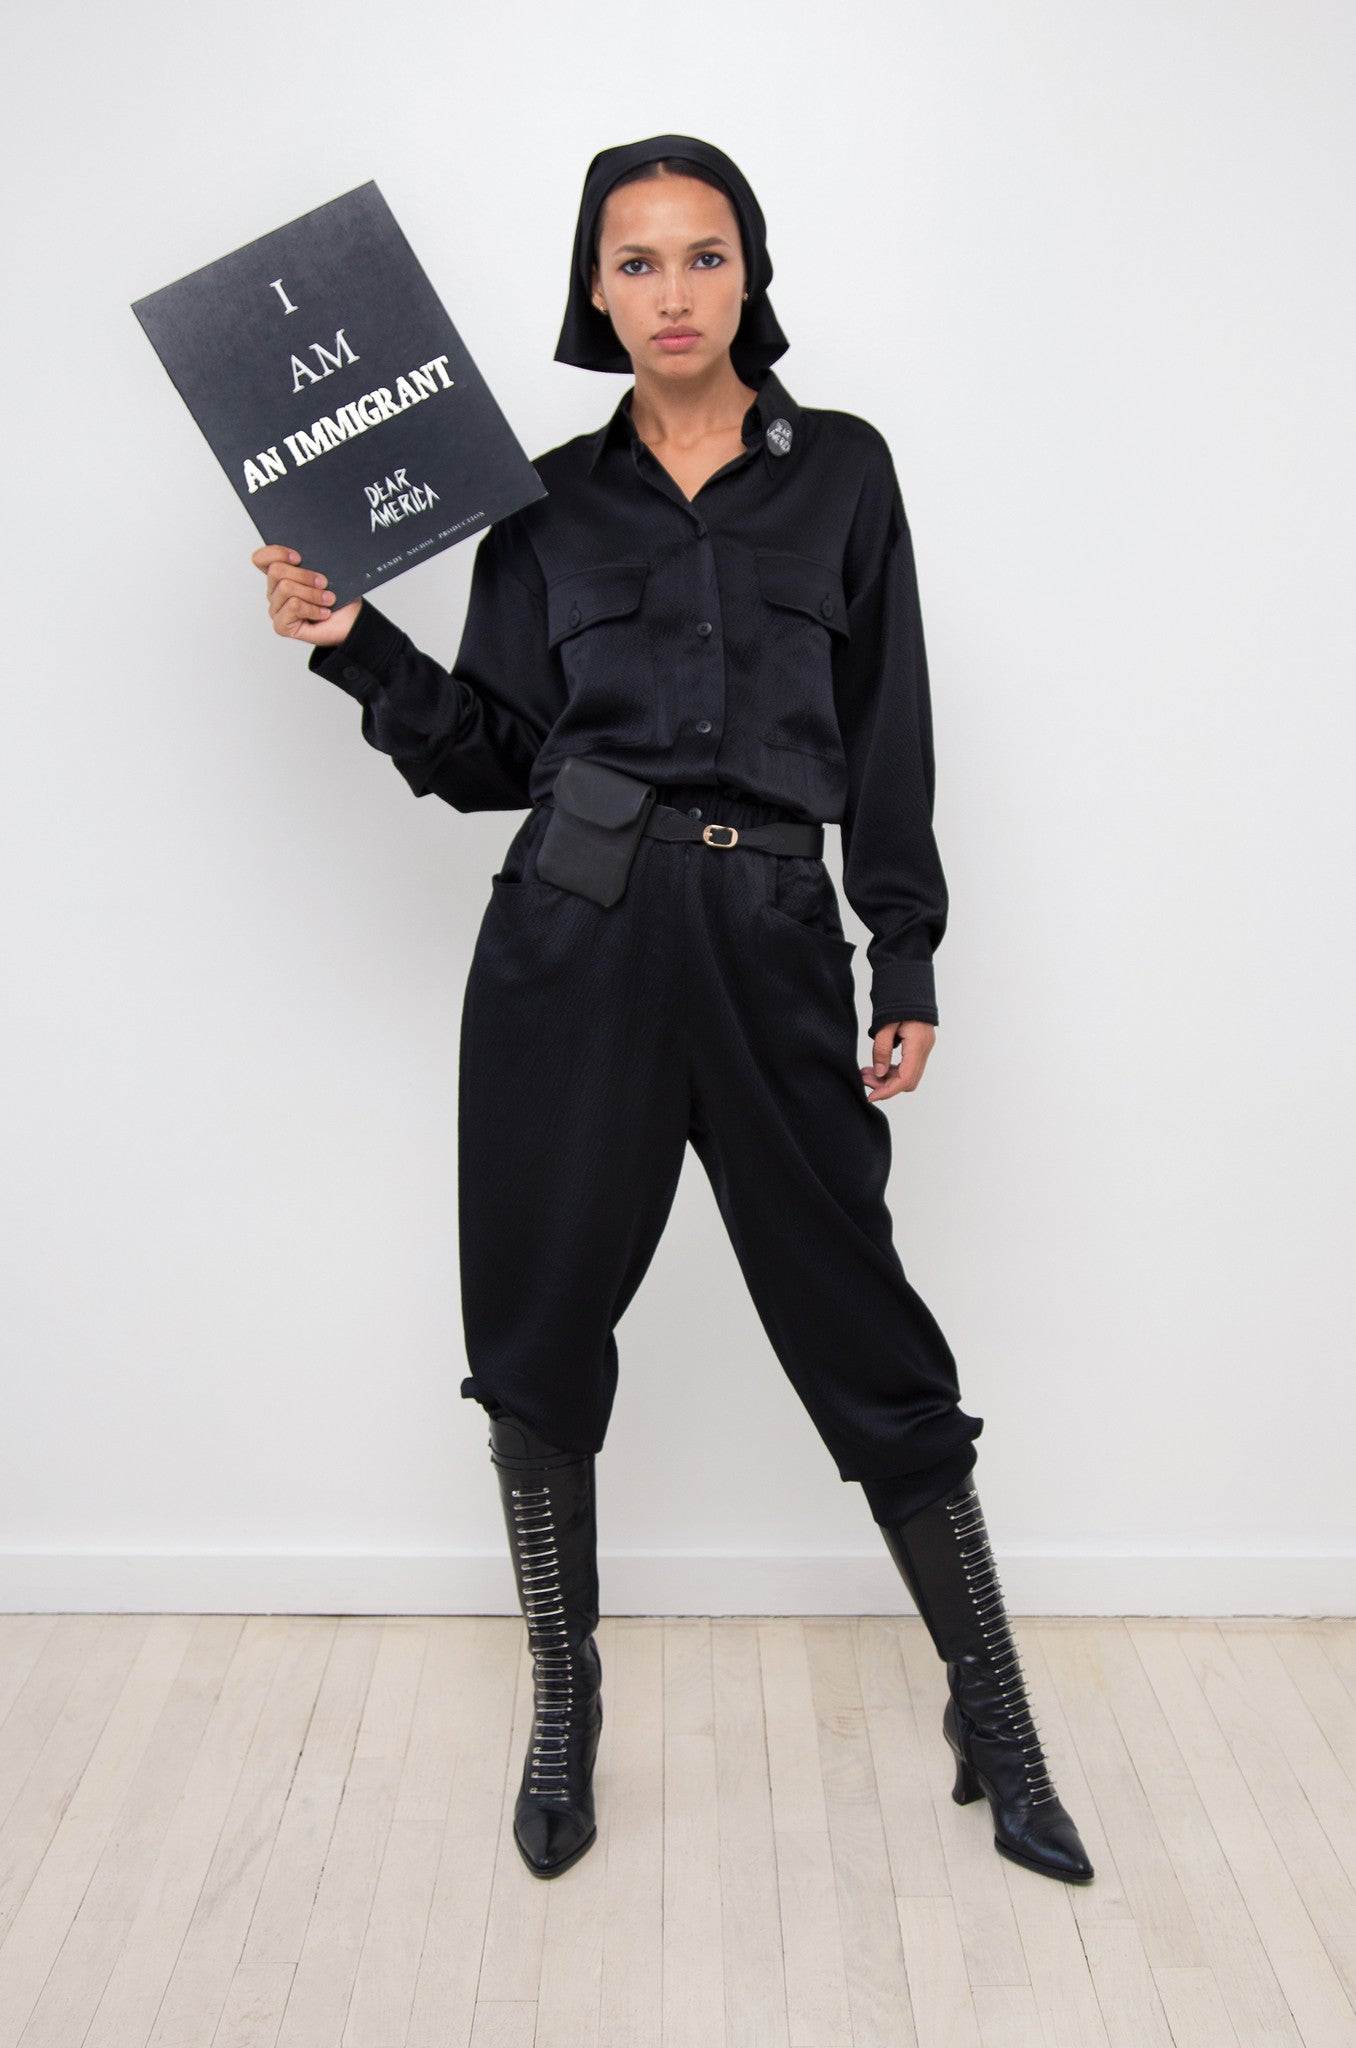 Camila IMG Model Wendy Nichol AW17 Clothing Fashion Anti Fascist Runway Show Dear America Handmade in NYC New York City Protest March I AM Long Sleeve Marching Jumper Silk button collar pockets GI Jane Combat Military Black Uniform Jumpsuit Jumper Aviator Top Gun